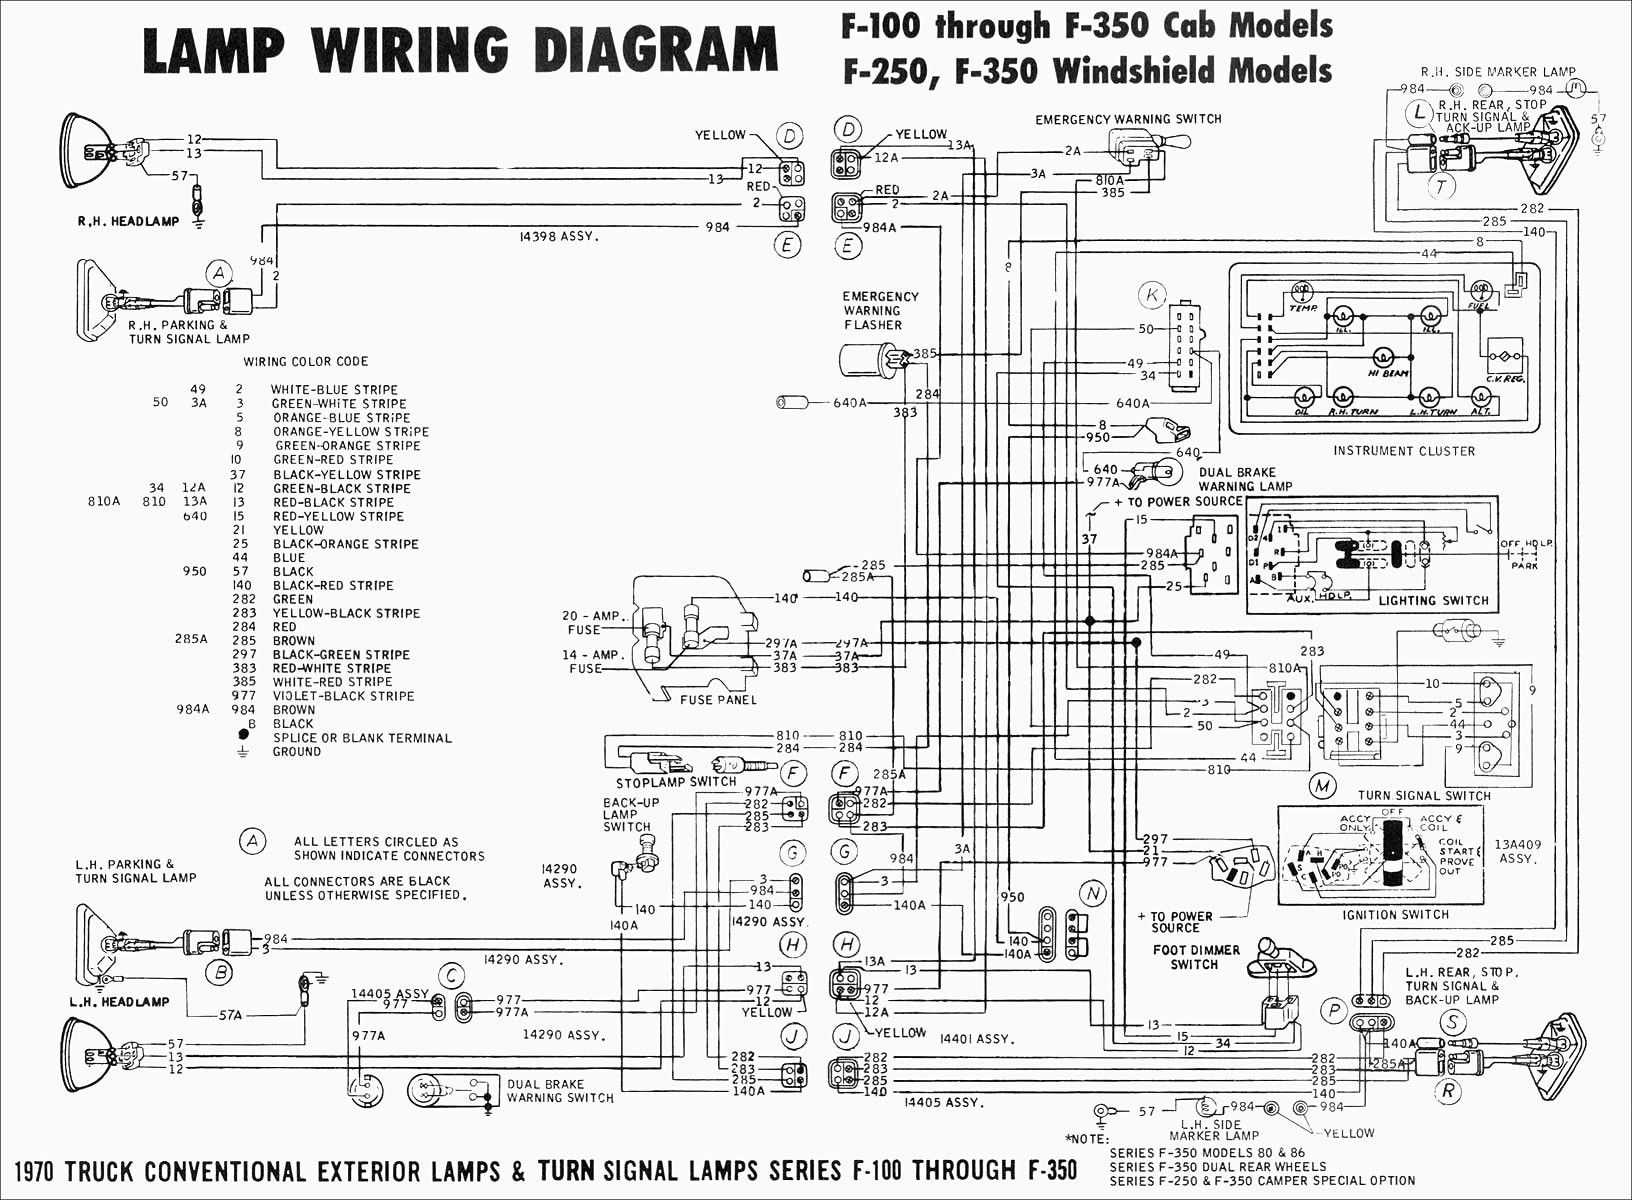 New Wiring Diagram Key Diagram Wiringdiagram Diagramming Diagramm Visuals Visualisation Graphi Ford Explorer Ford Super Duty Sistema Electrico